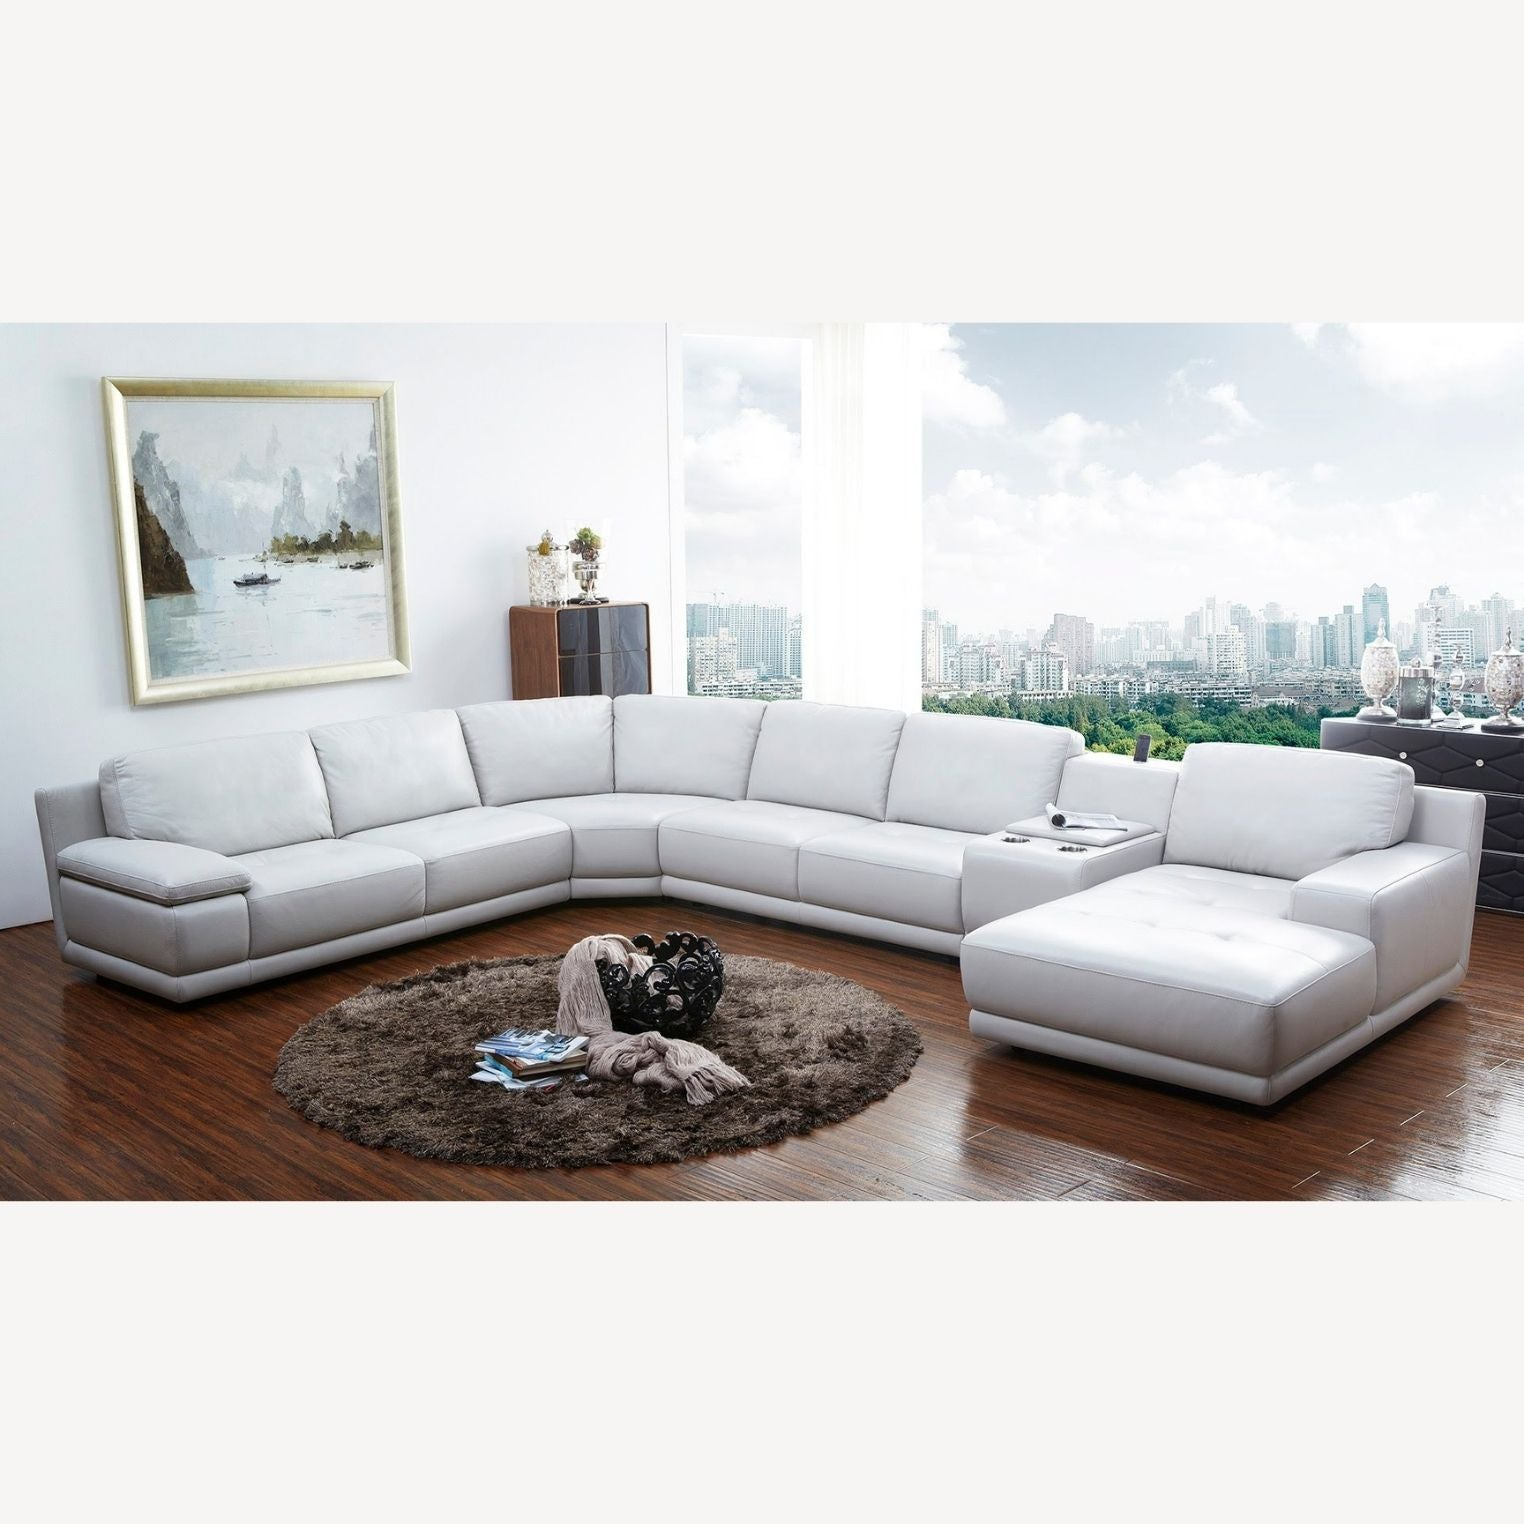 Astana Full Leather Corner Couch